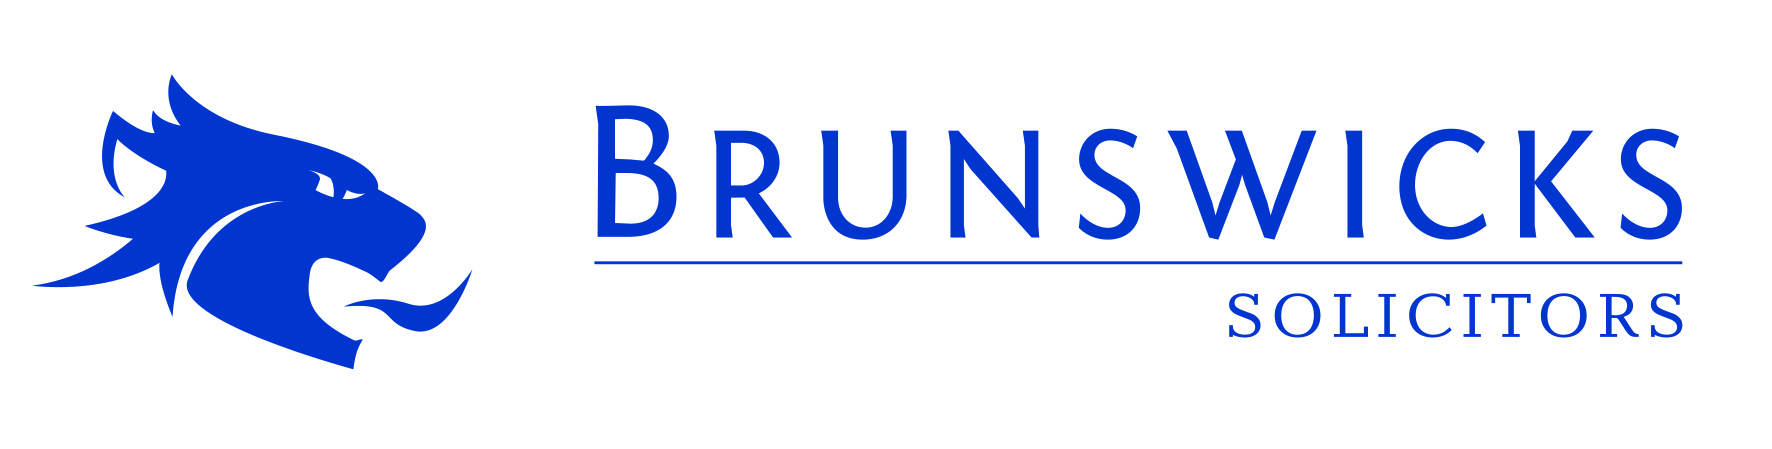 Brunswicks Solicitors logo